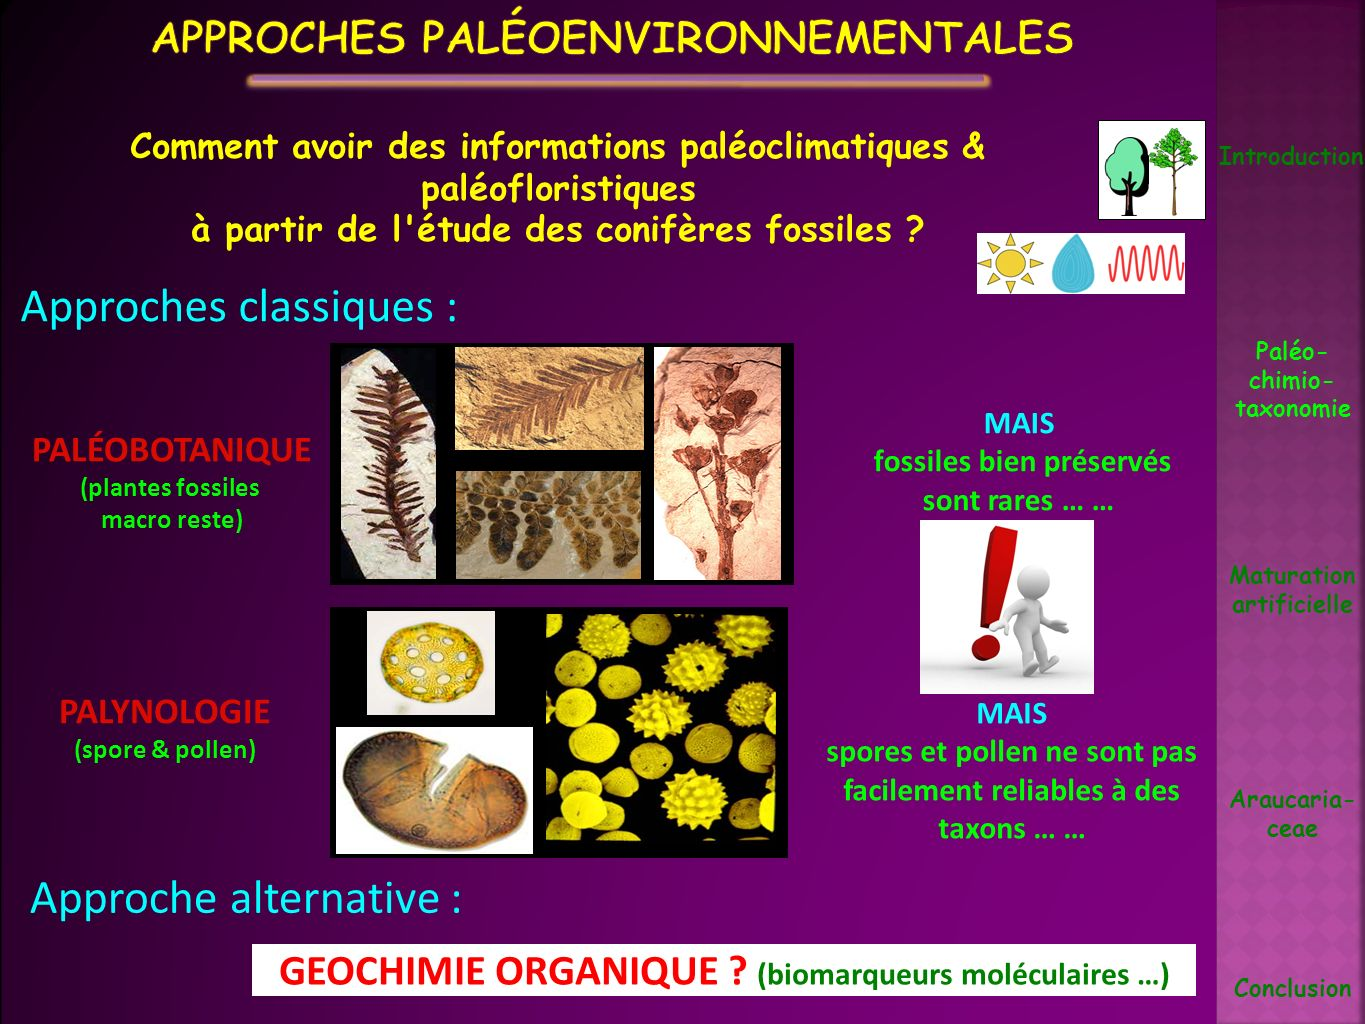 Introduction Paléo- chimio- taxonomie Maturation artificielle Araucaria- ceae Conclusion